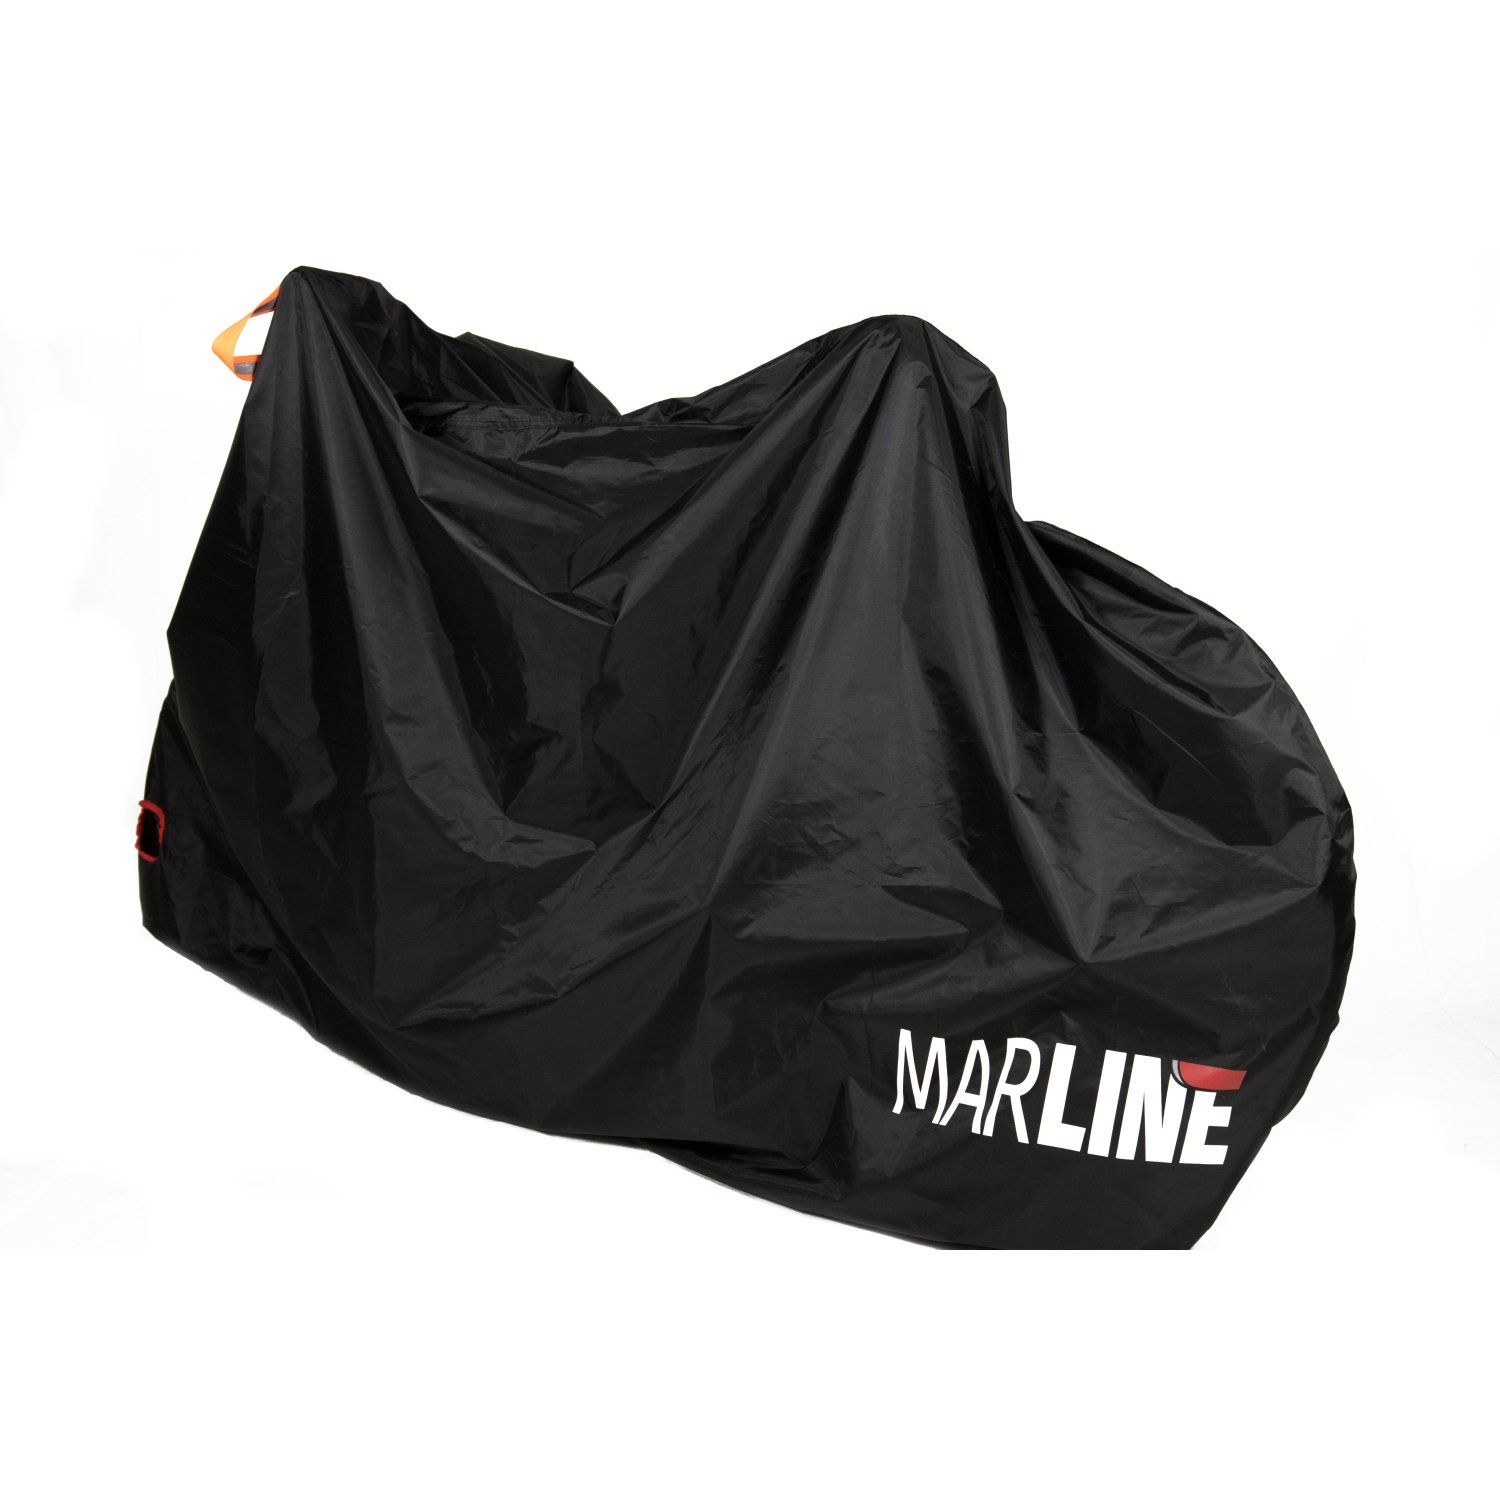 MarLine Bike Cover Outdoor Waterproof Bicycle Cover Dust Snow Proof with Lock Hole and Reflective Straps by Marline (Image #3)